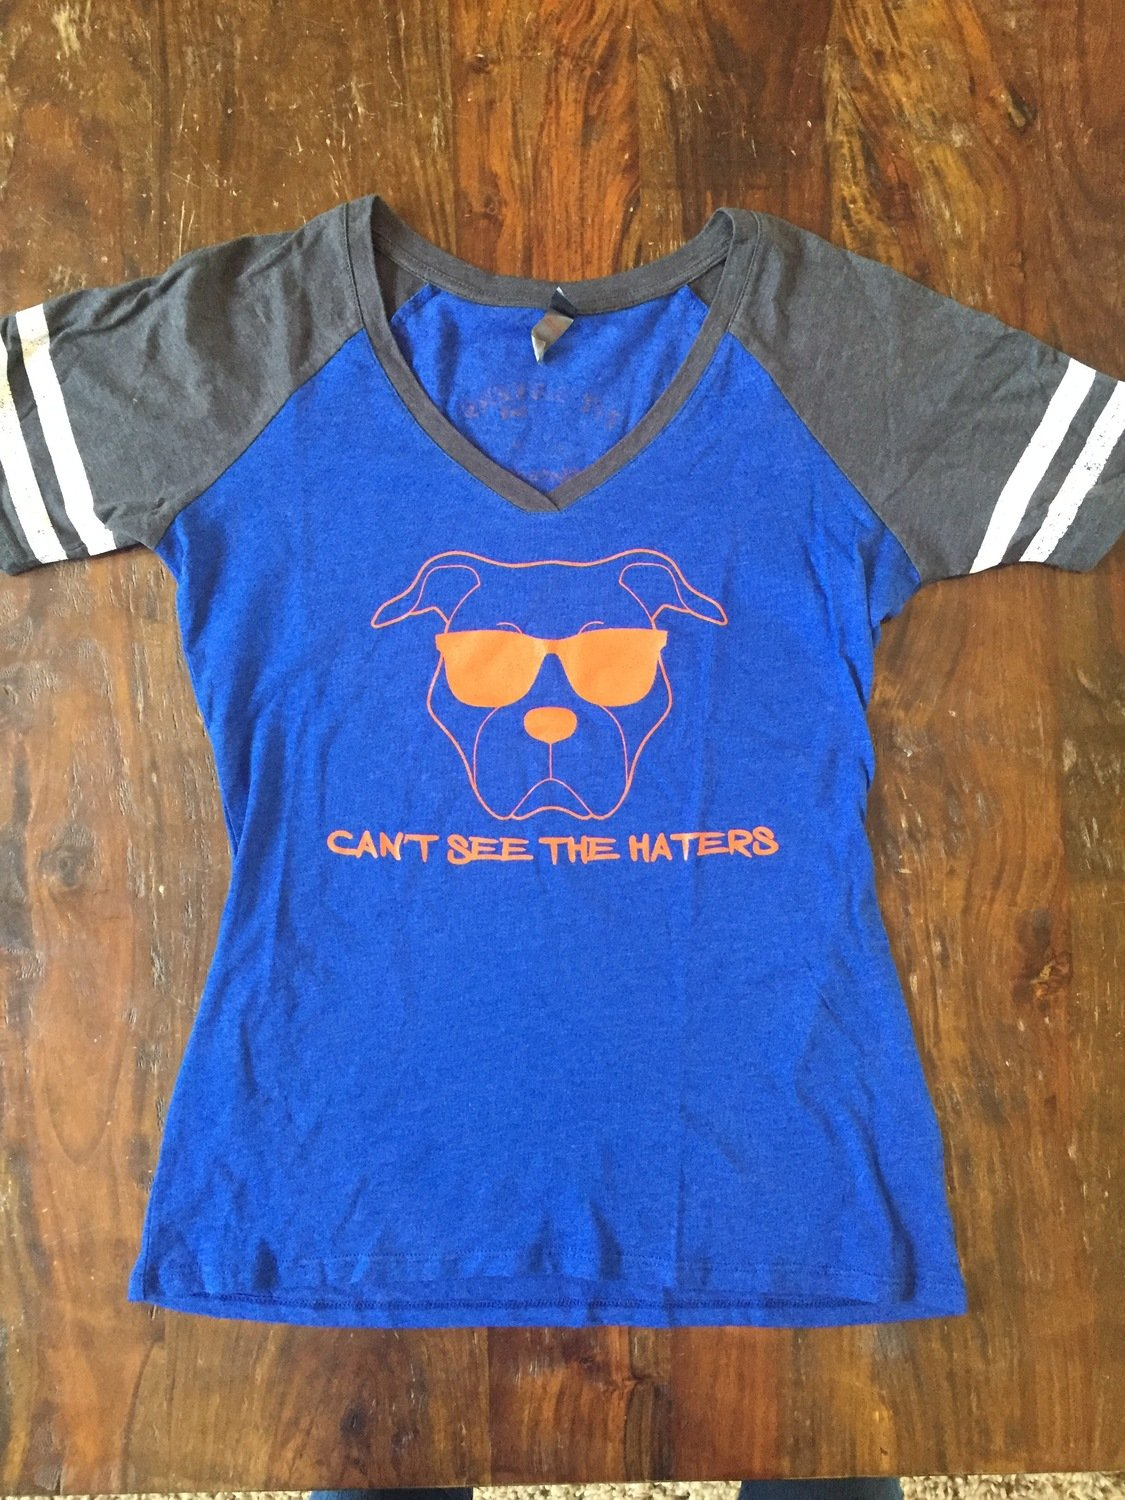 Ladies Vneck- Can't See the Haters- Blue and Gray with Orange writing - XLarge